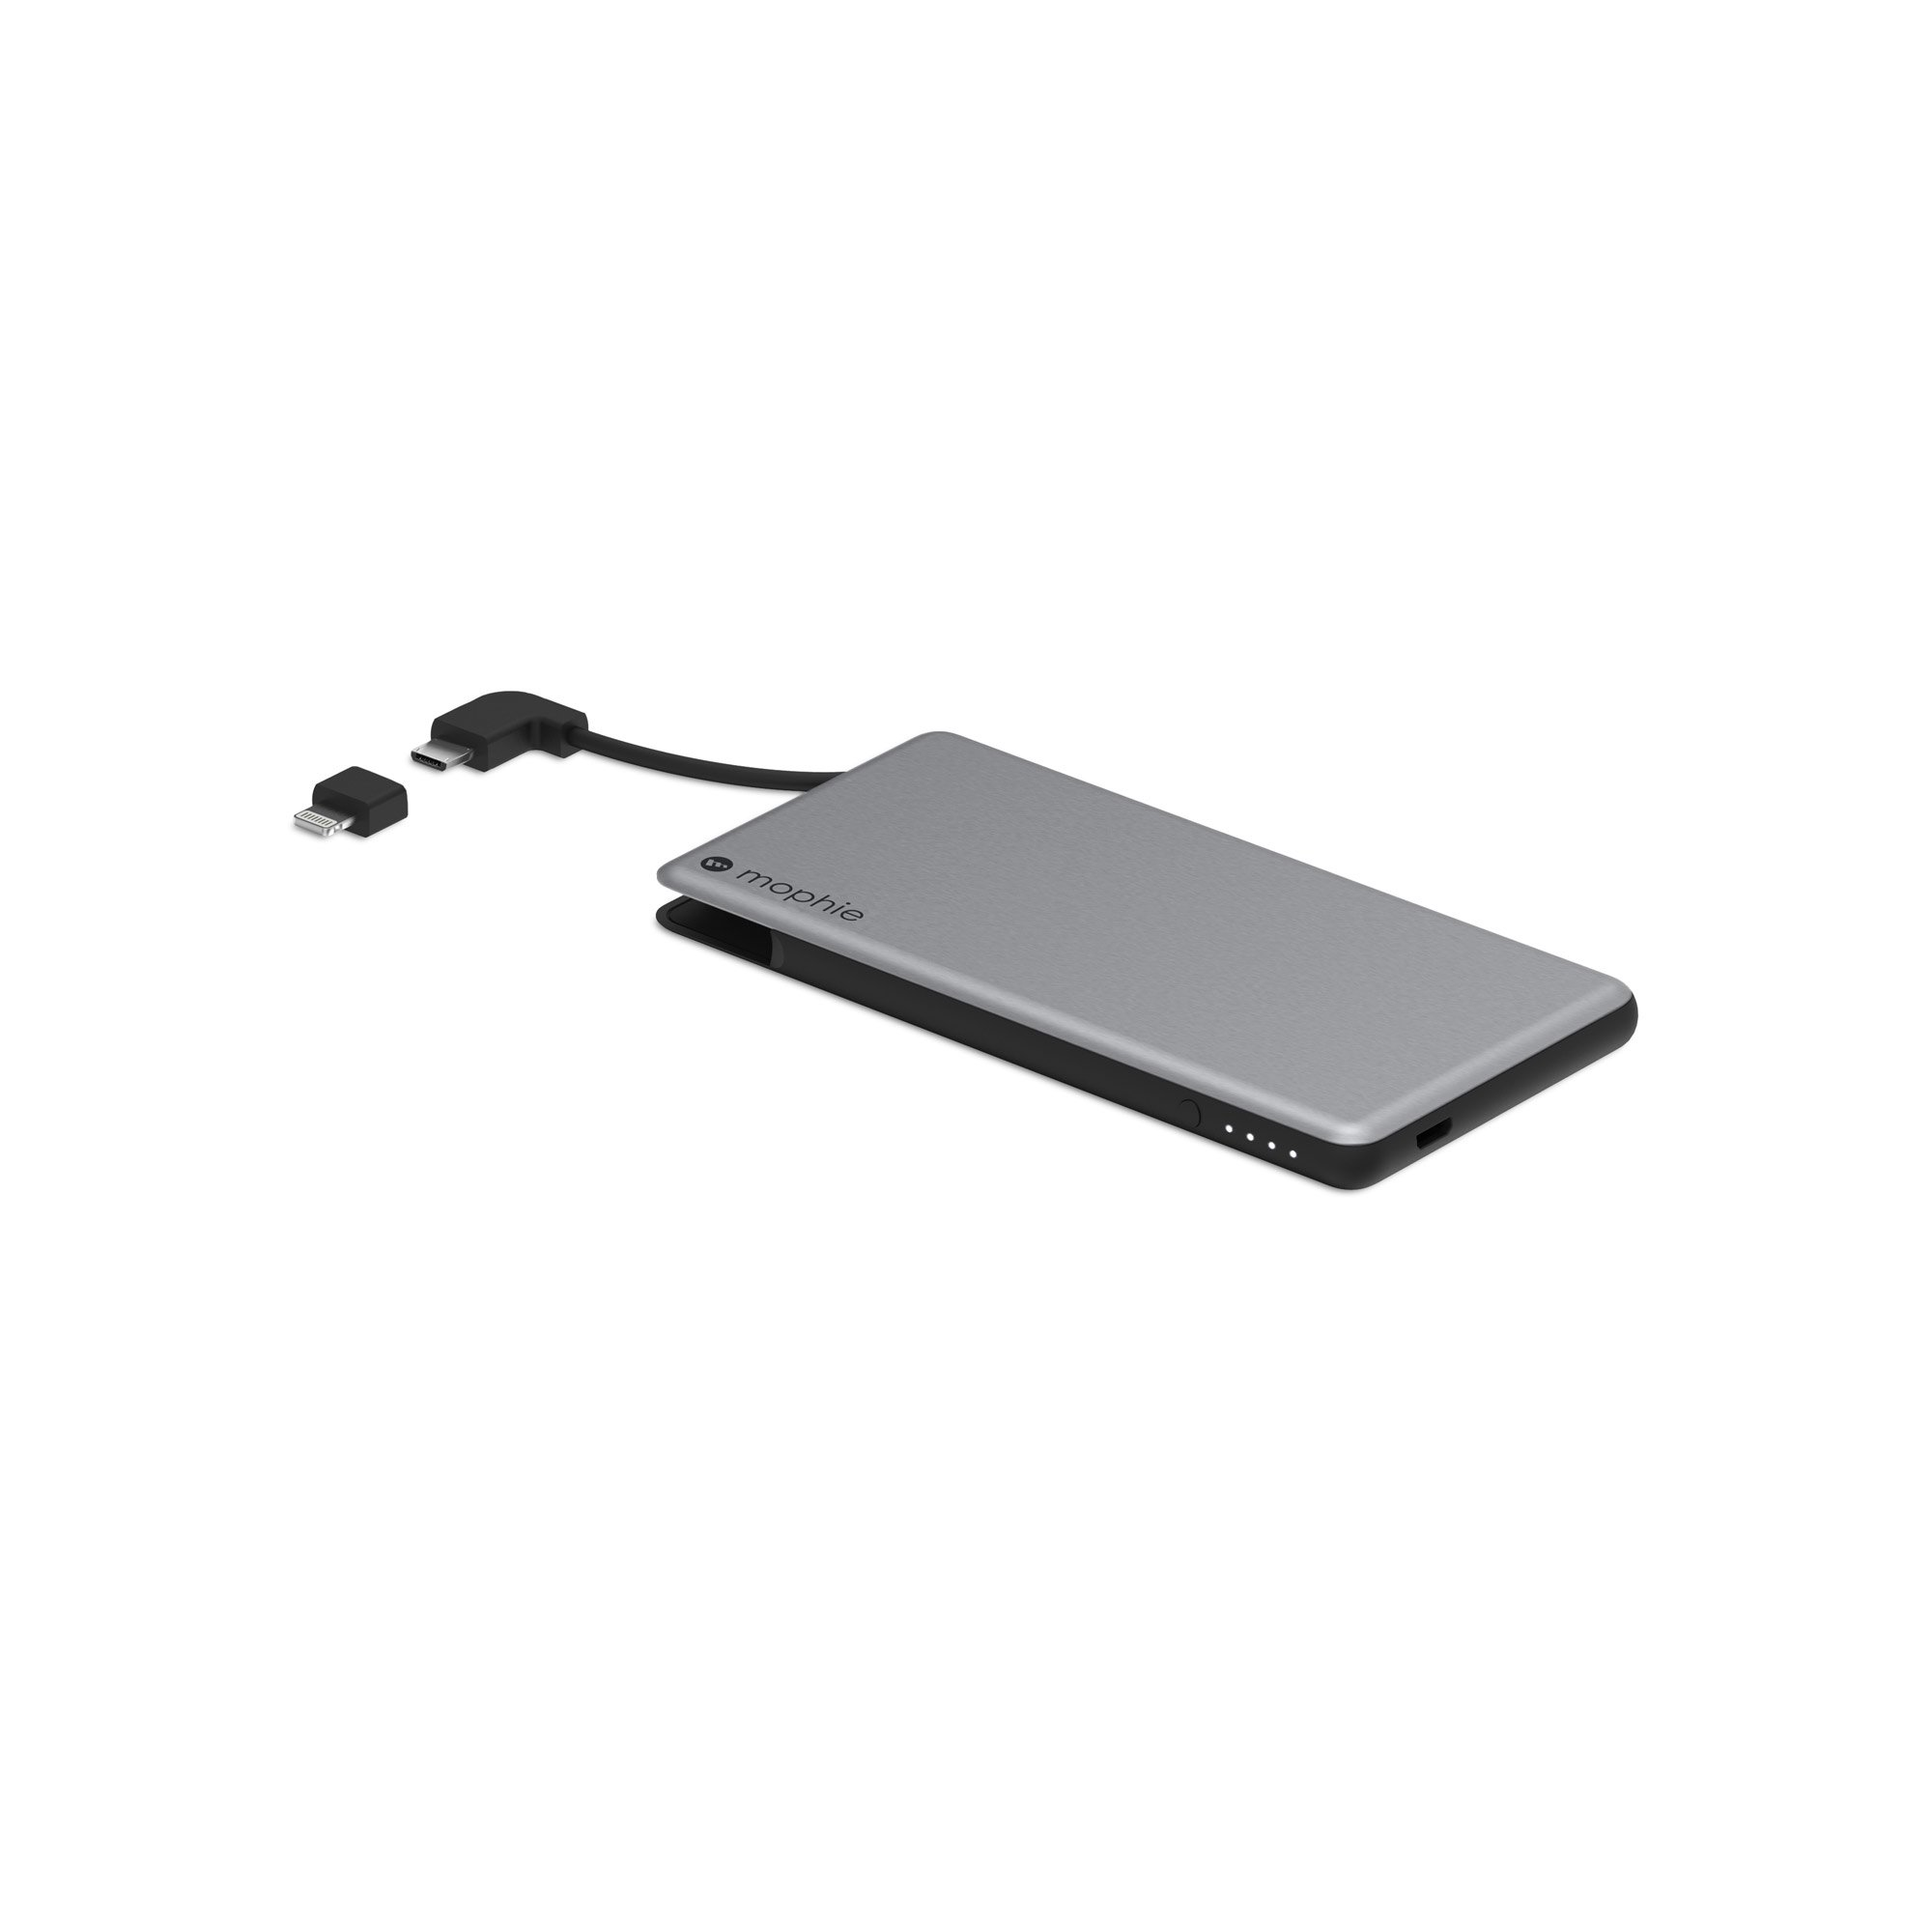 mophie powerstation Plus Mini External Battery with Built in Cables for Smartphones and Tablets (4,000mAh) - Space Grey